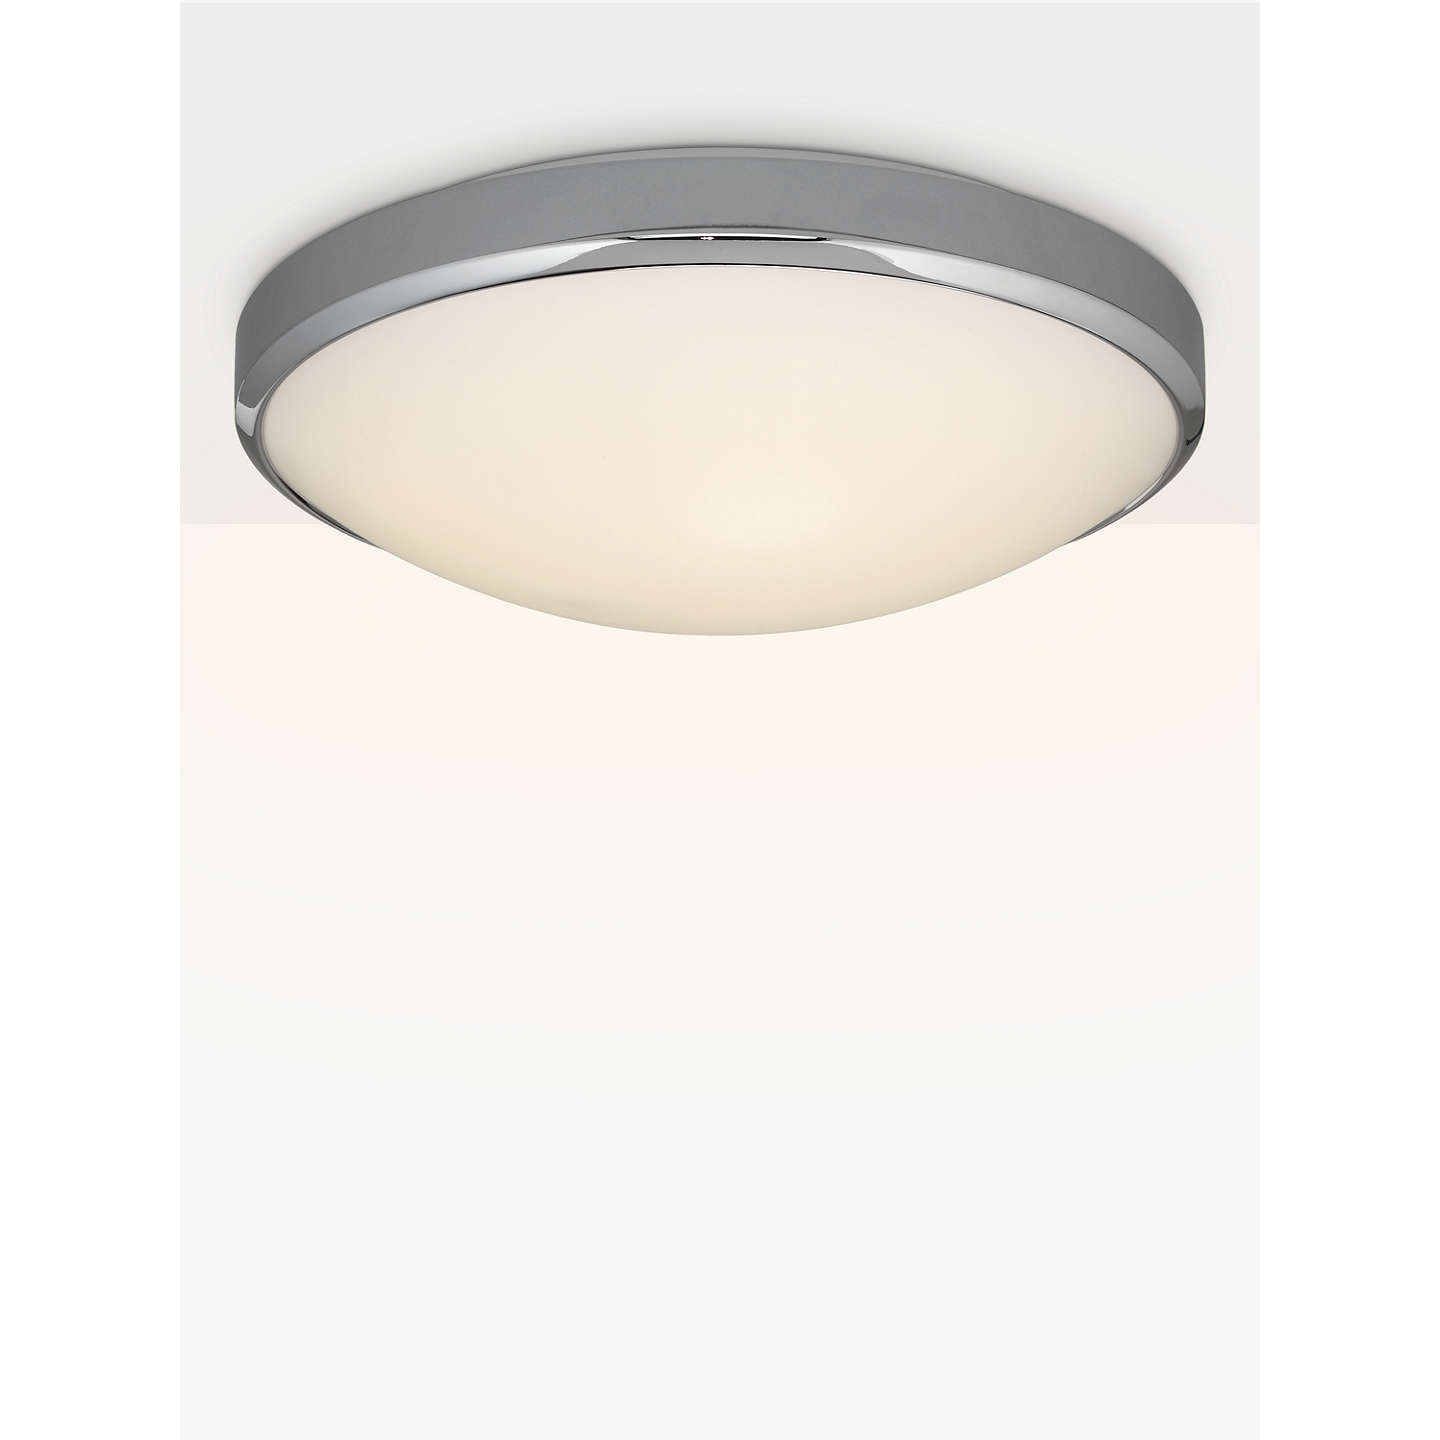 Astro osaka led bathroom light whitechrome at john lewis buyastro osaka led bathroom light whitechrome online at johnlewis aloadofball Image collections